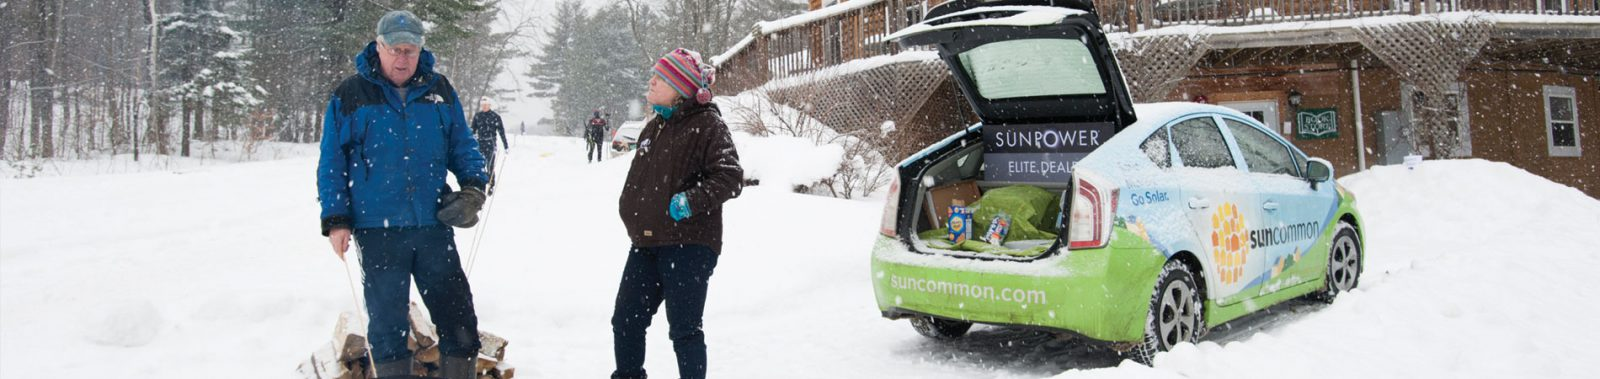 SunCommon car in the snow